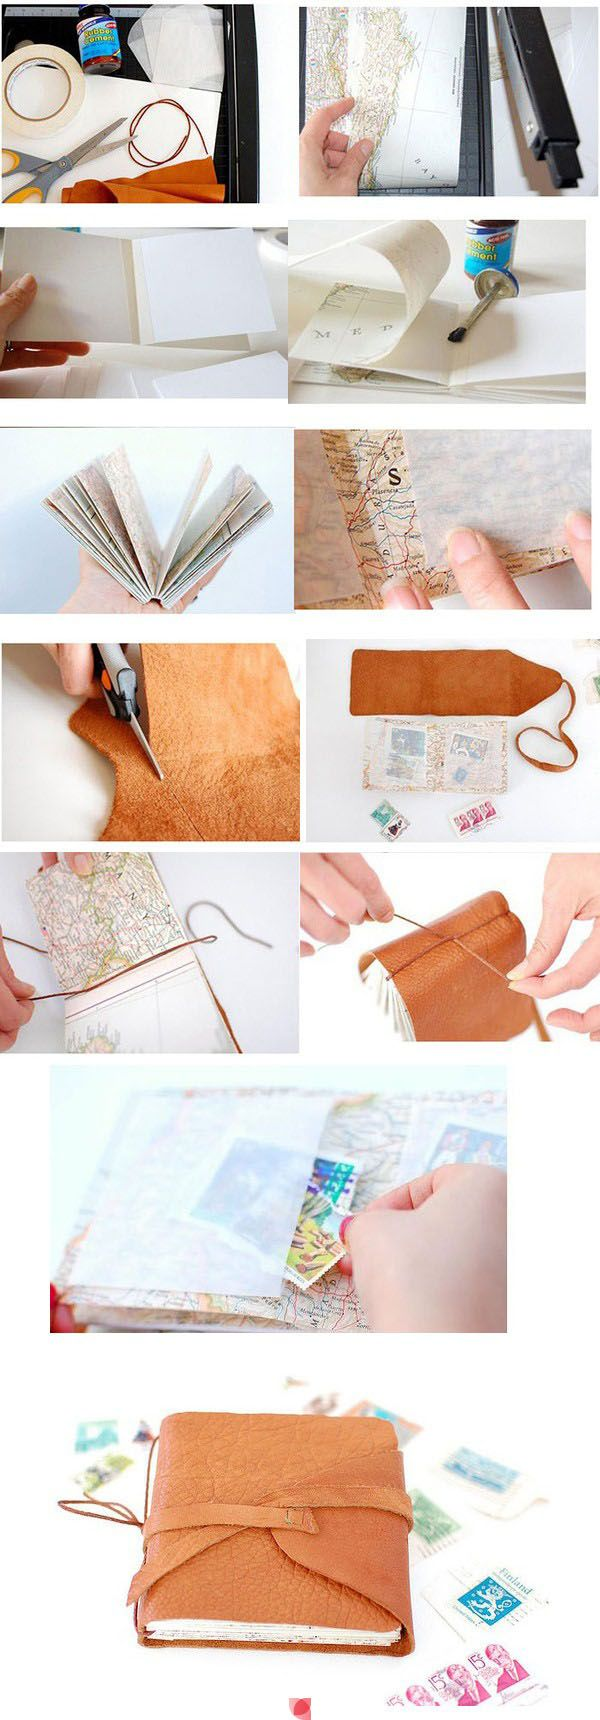 Travel Journal idea -- line the endpapers of the journal with maps. Re-pinning for the wrap-around idea on the outside.